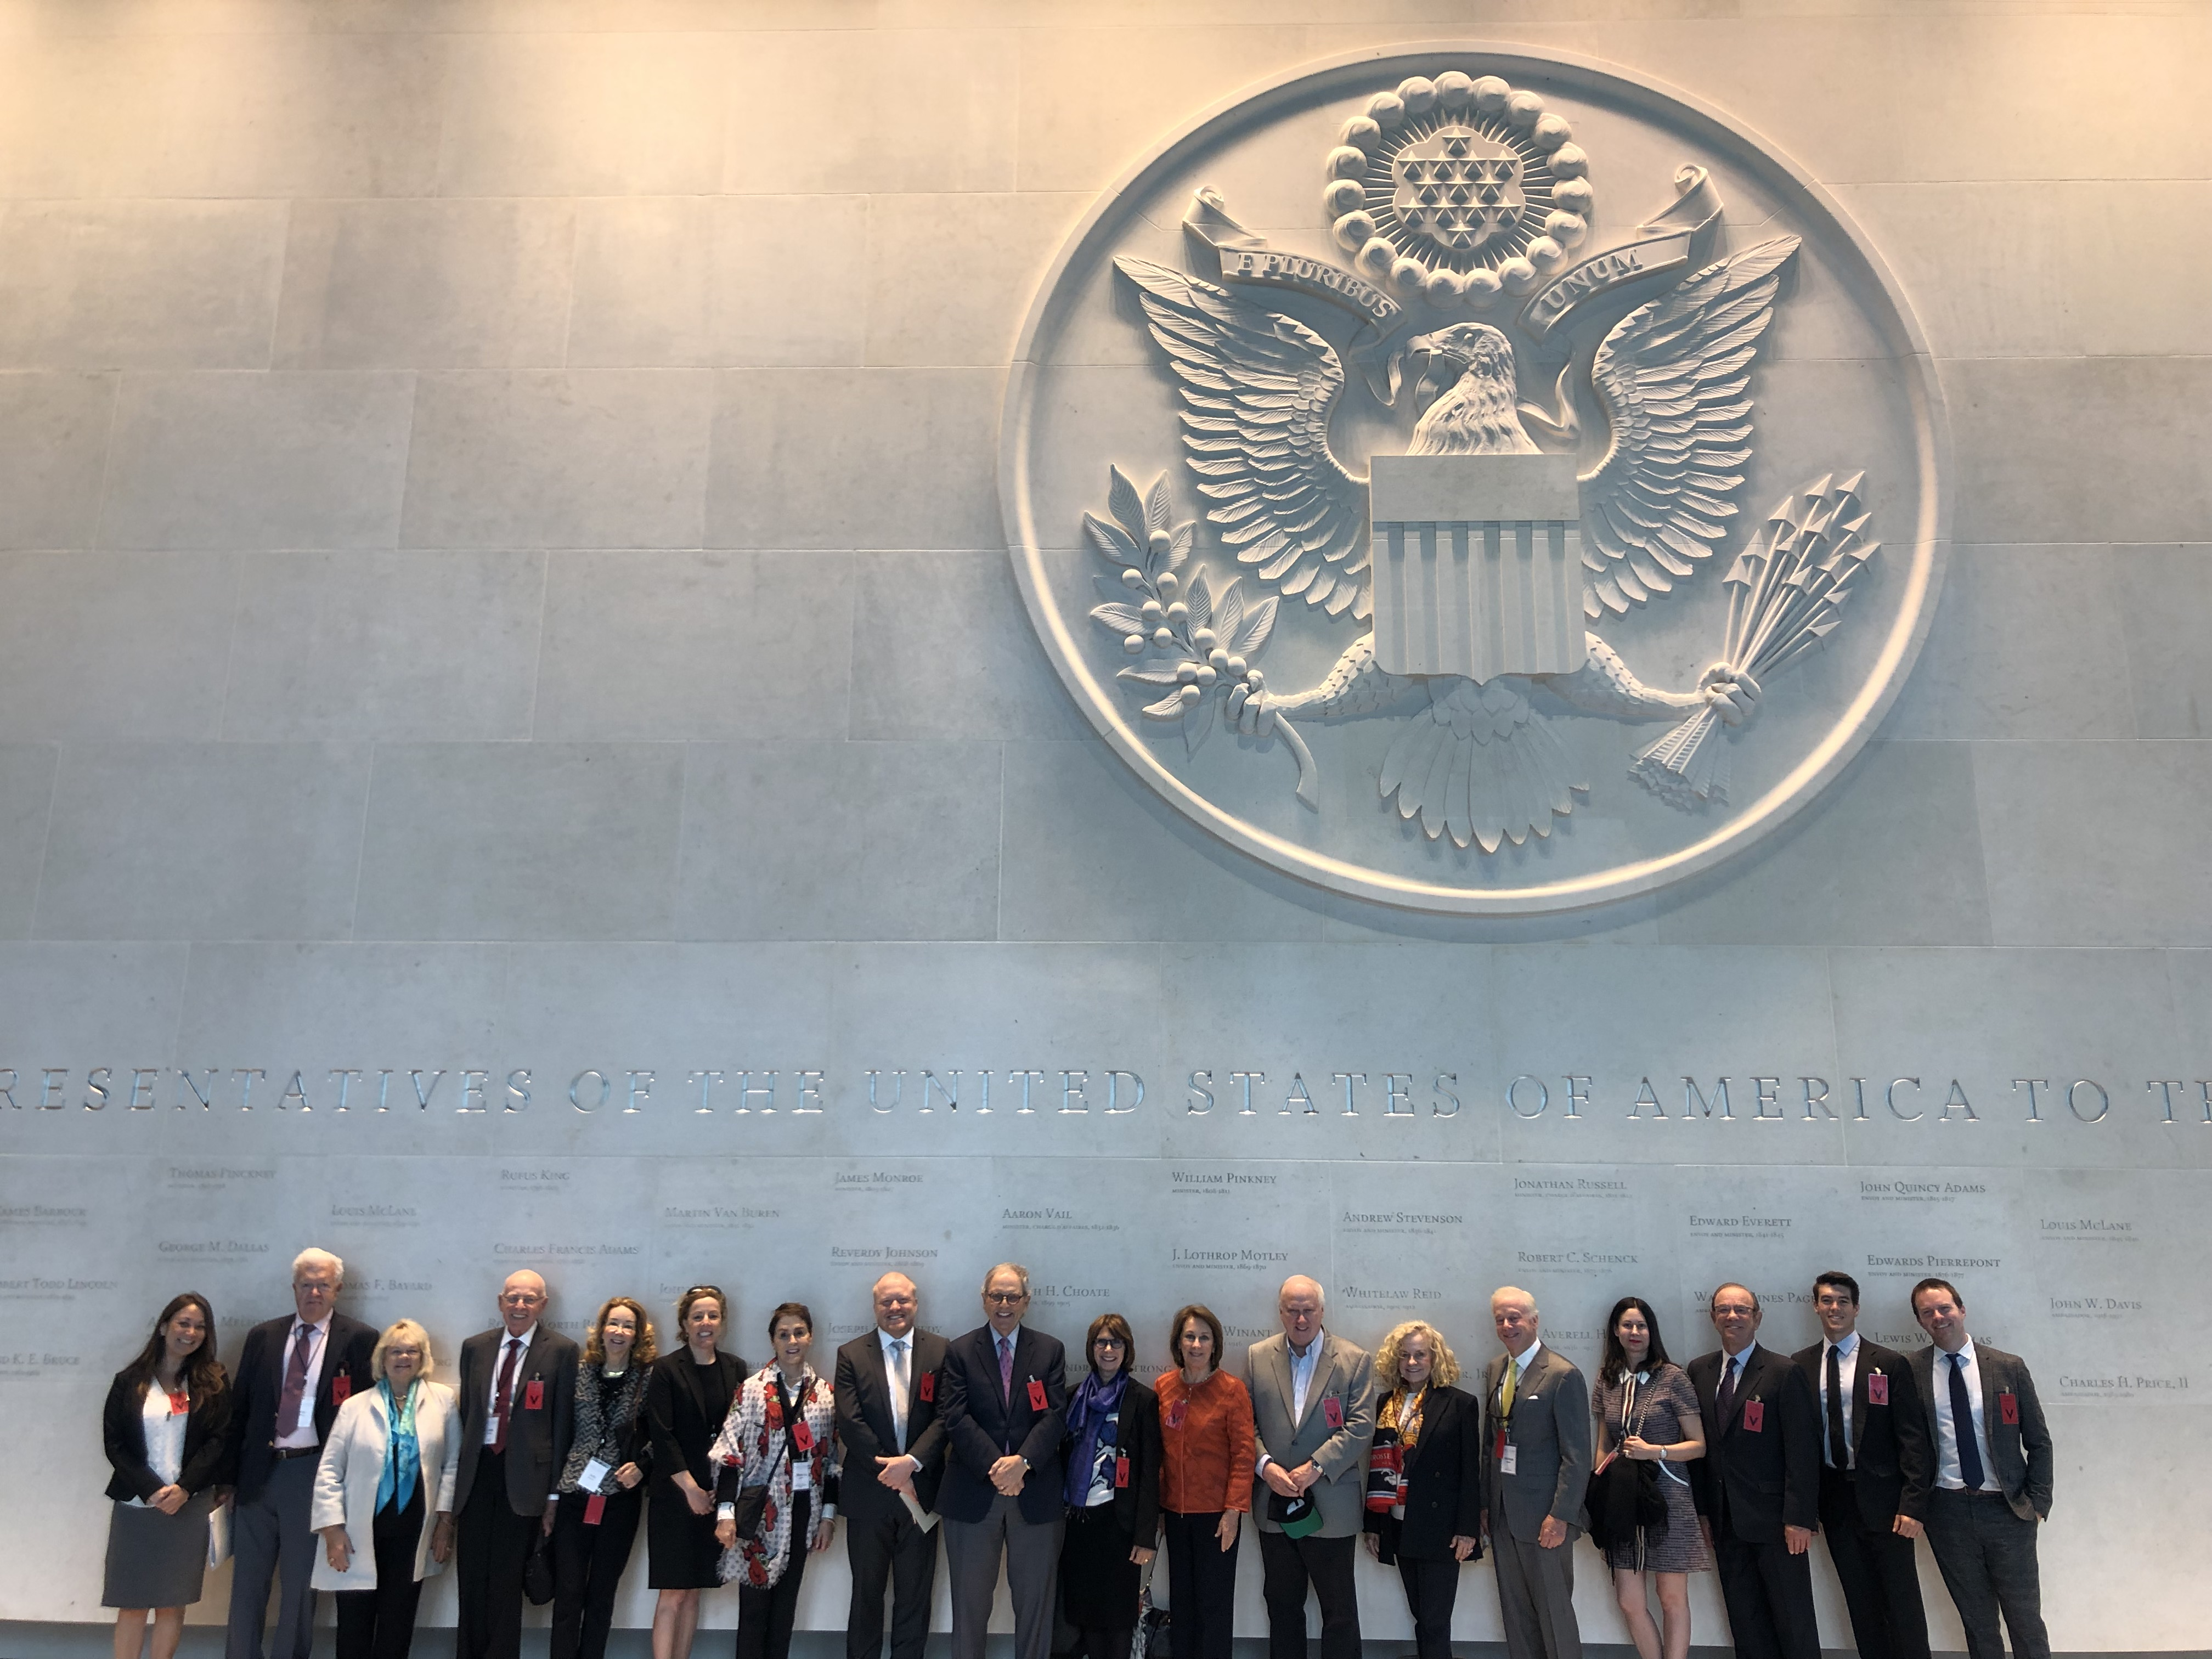 UK & France - May 2019  Council delegates visit the new U.S. Embassy in London during a visit to the United Kingdom and France at the height of the Brexit controversy in May 2019.